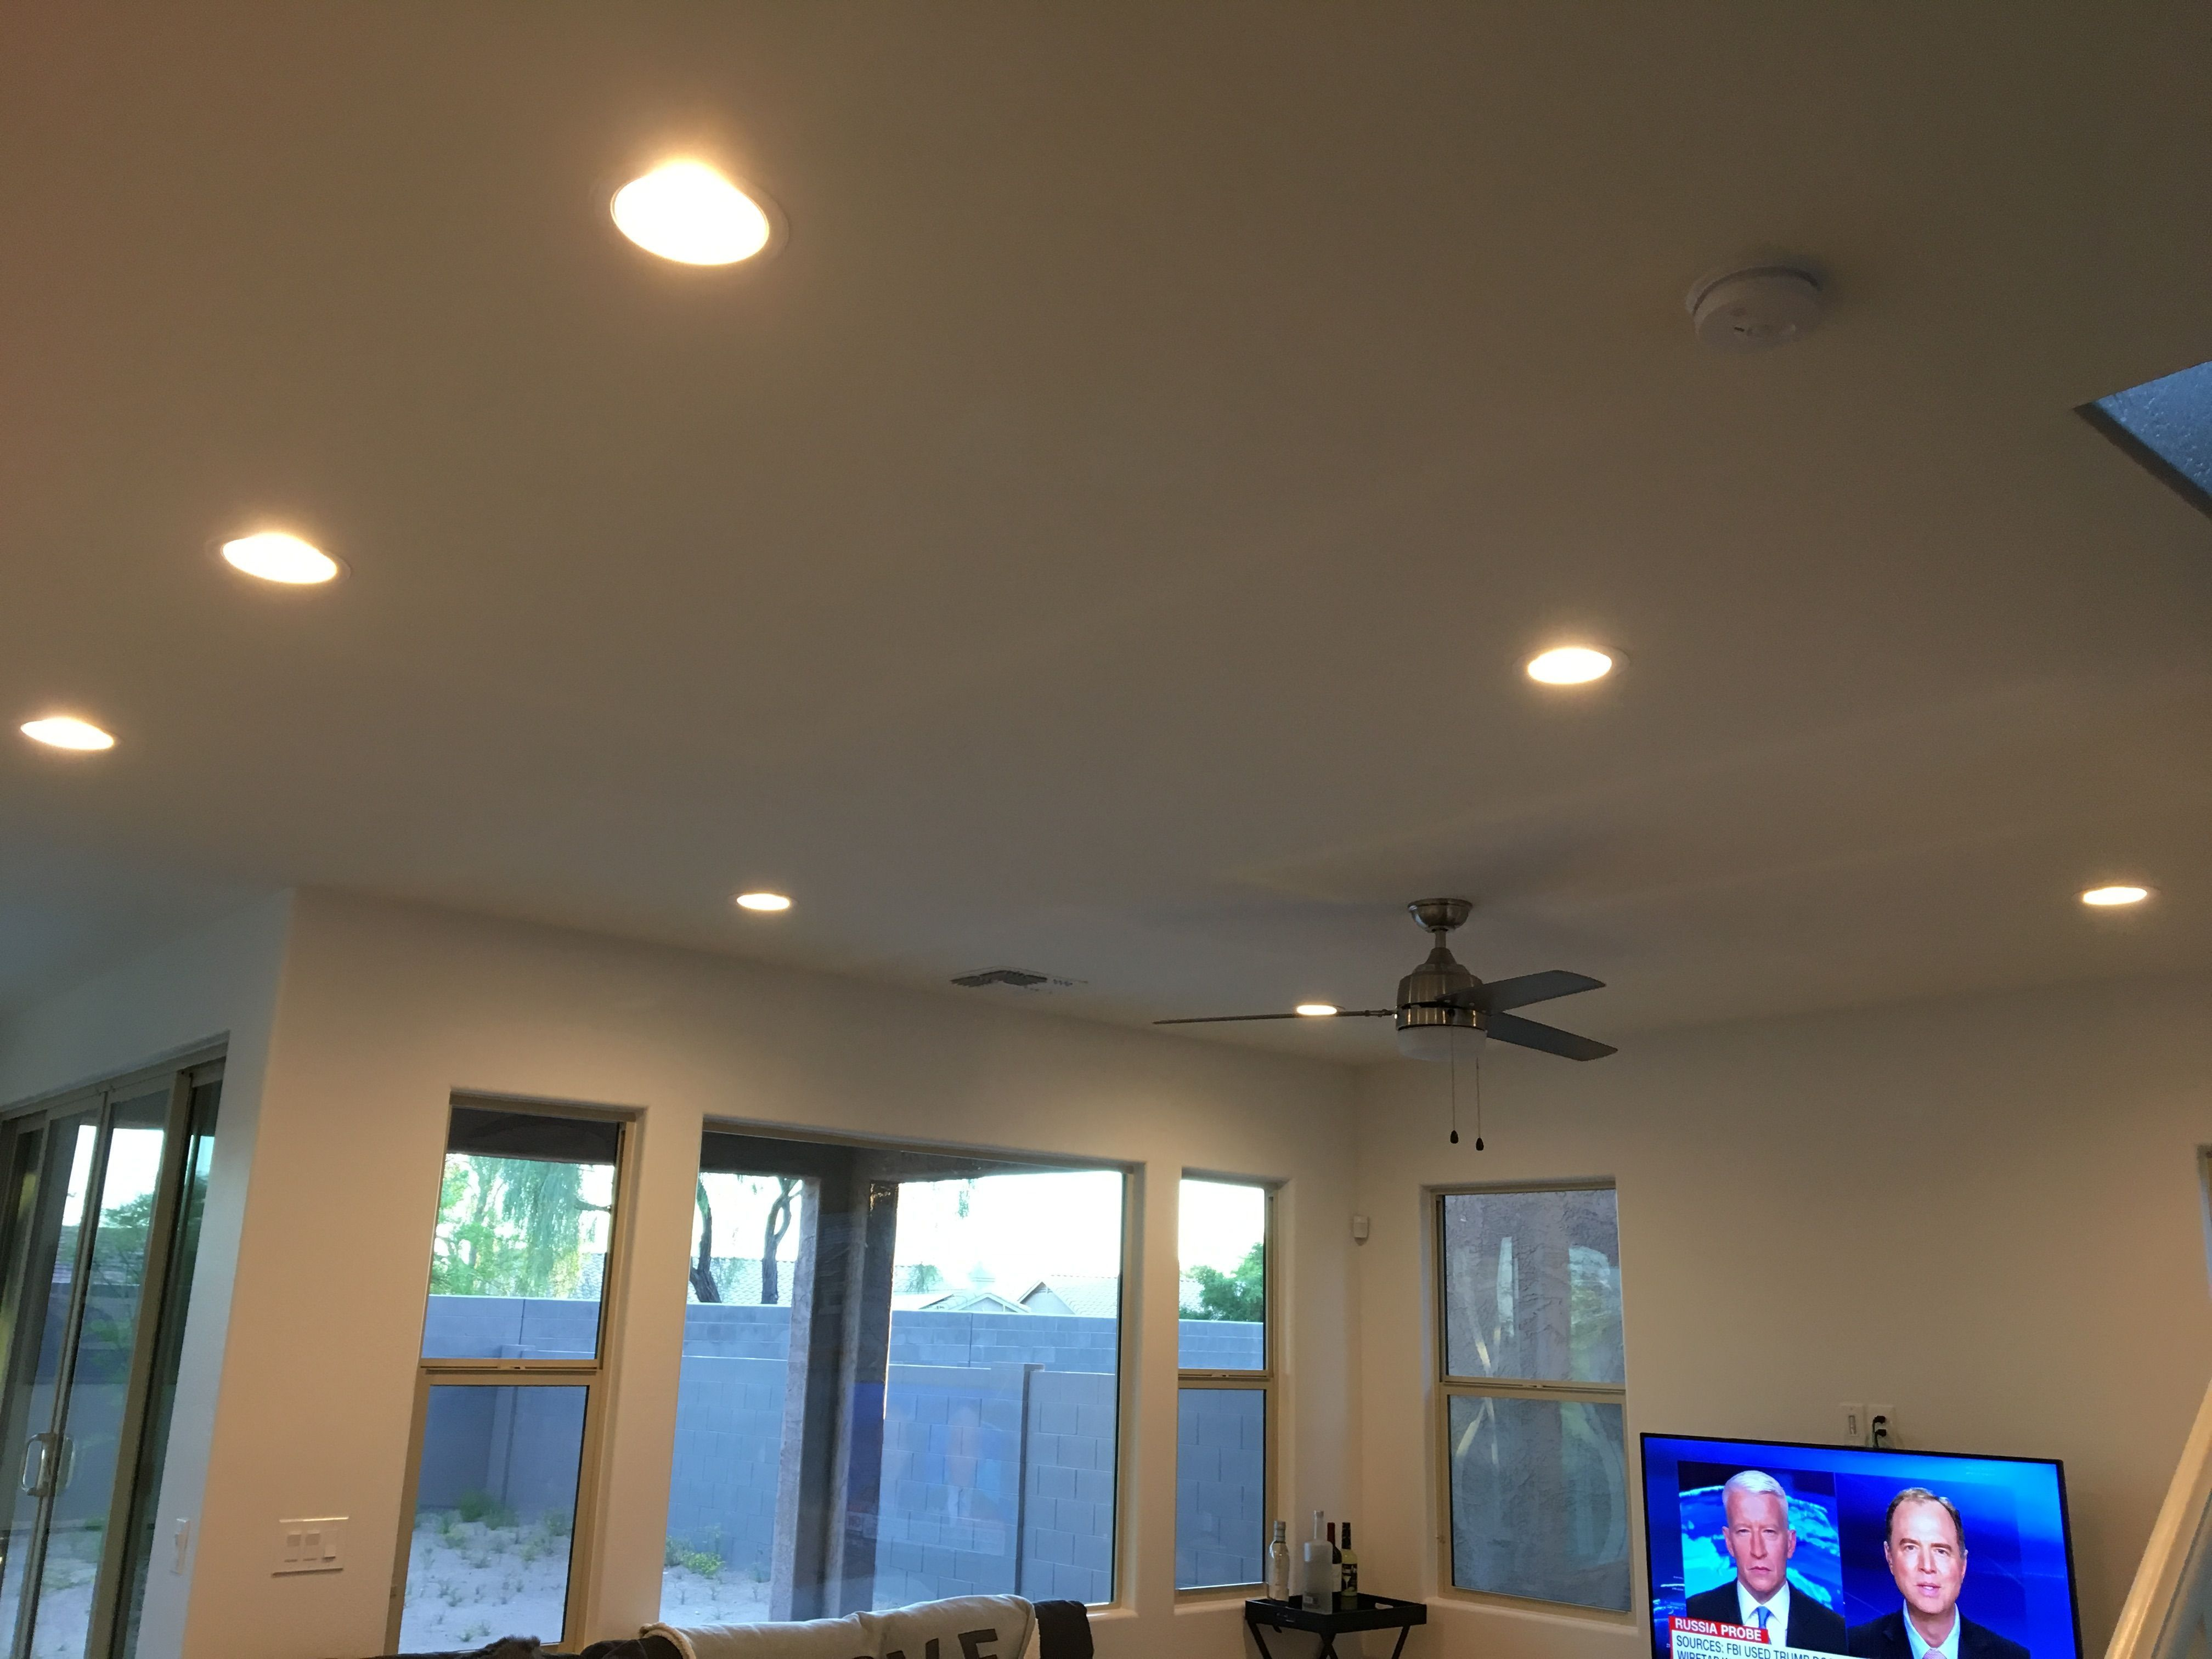 Installed Some New 6 Inch Led Recessed Lighting In The